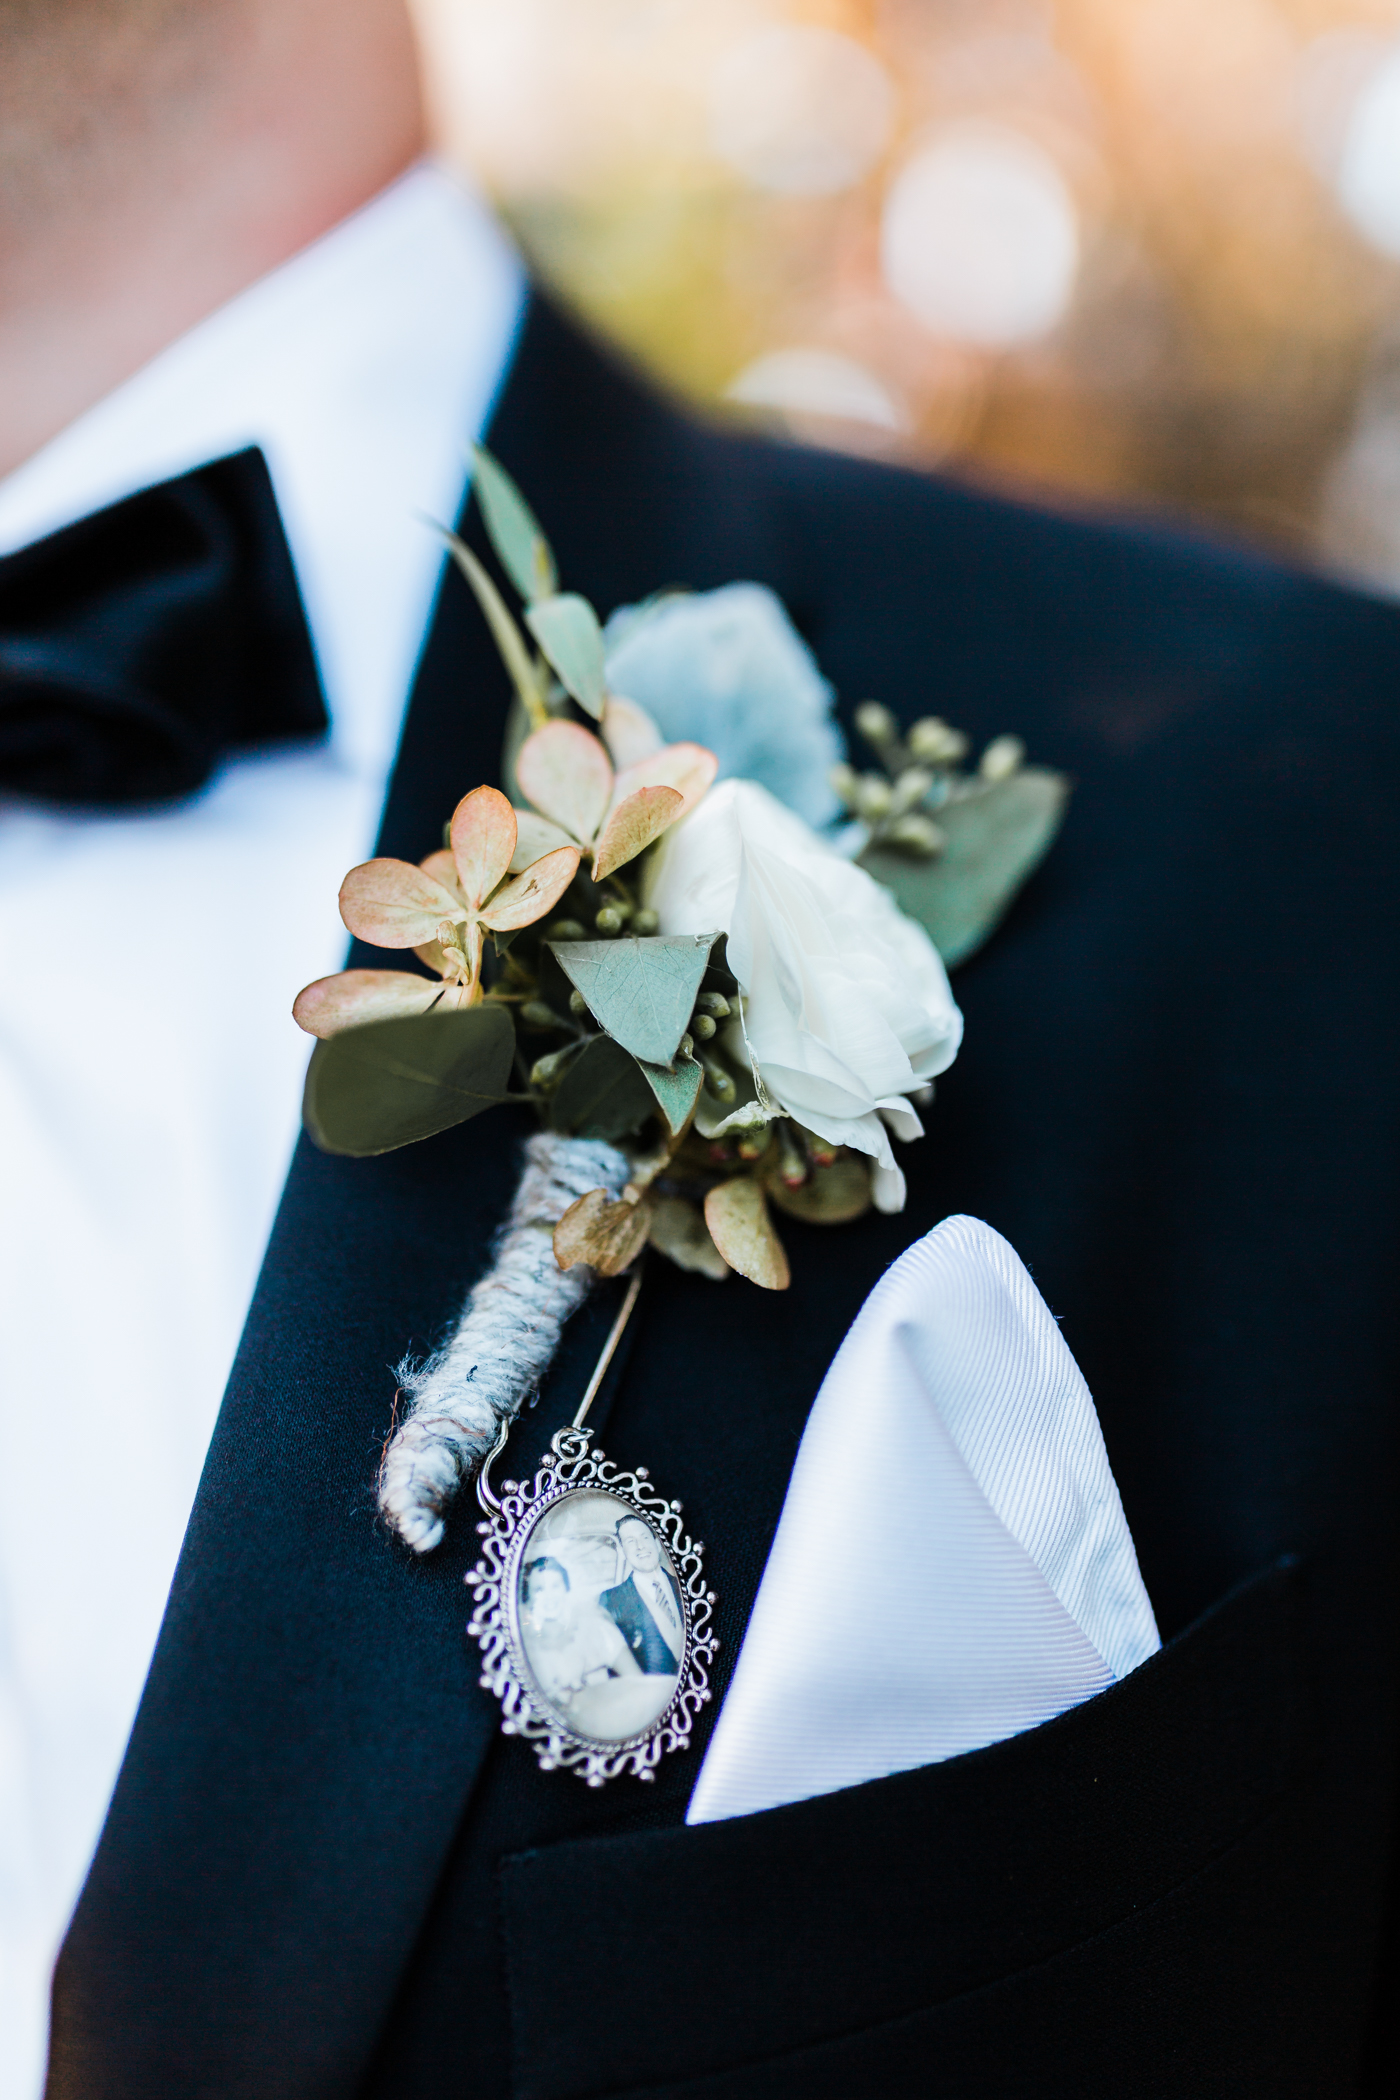 sentimental groom details - accessories for the groom - Maryland wedding inspiration - best wedding photographer in Maryland